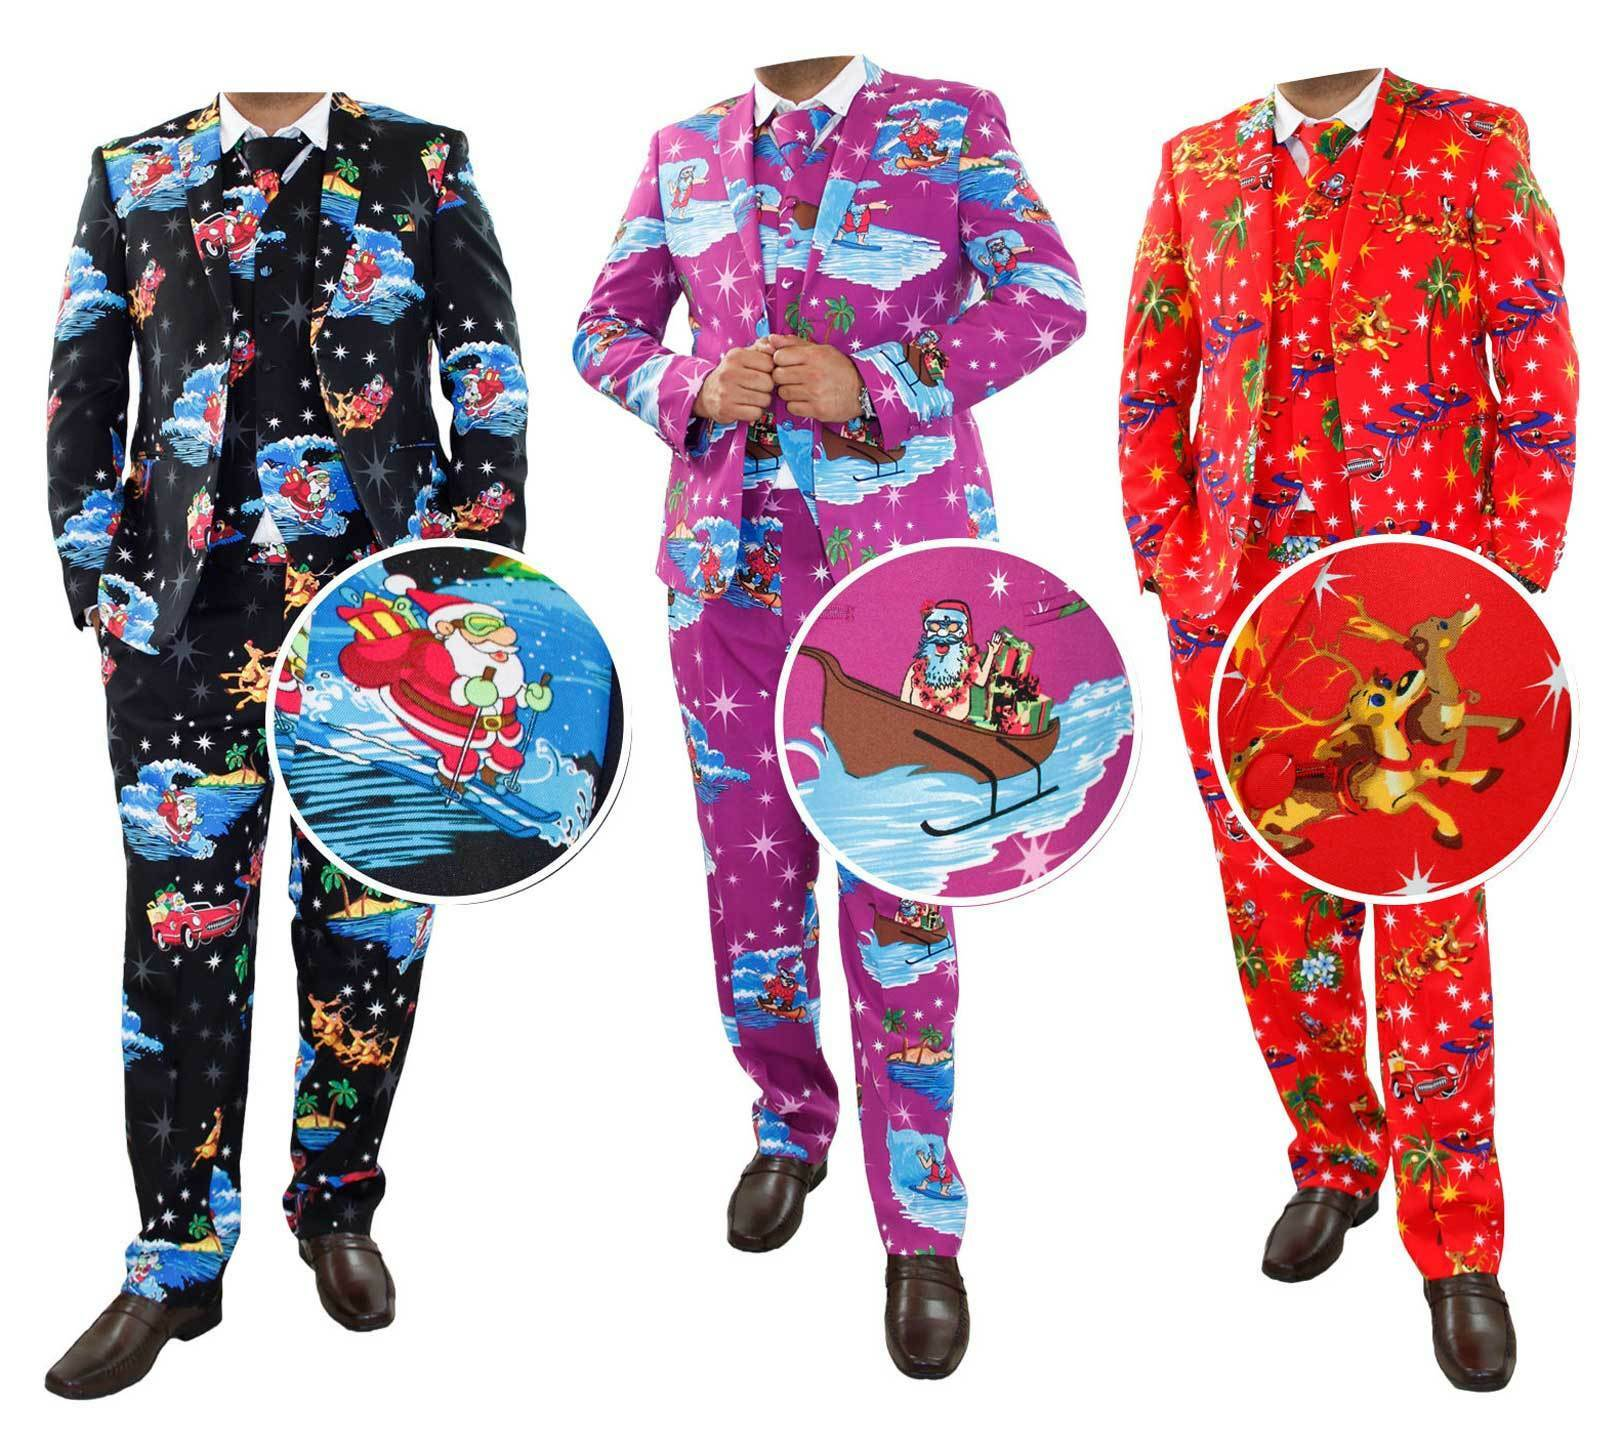 New  Herren Christmas Fancy Dress Novelty Print Deluxe Festive Costumes Casual Suit